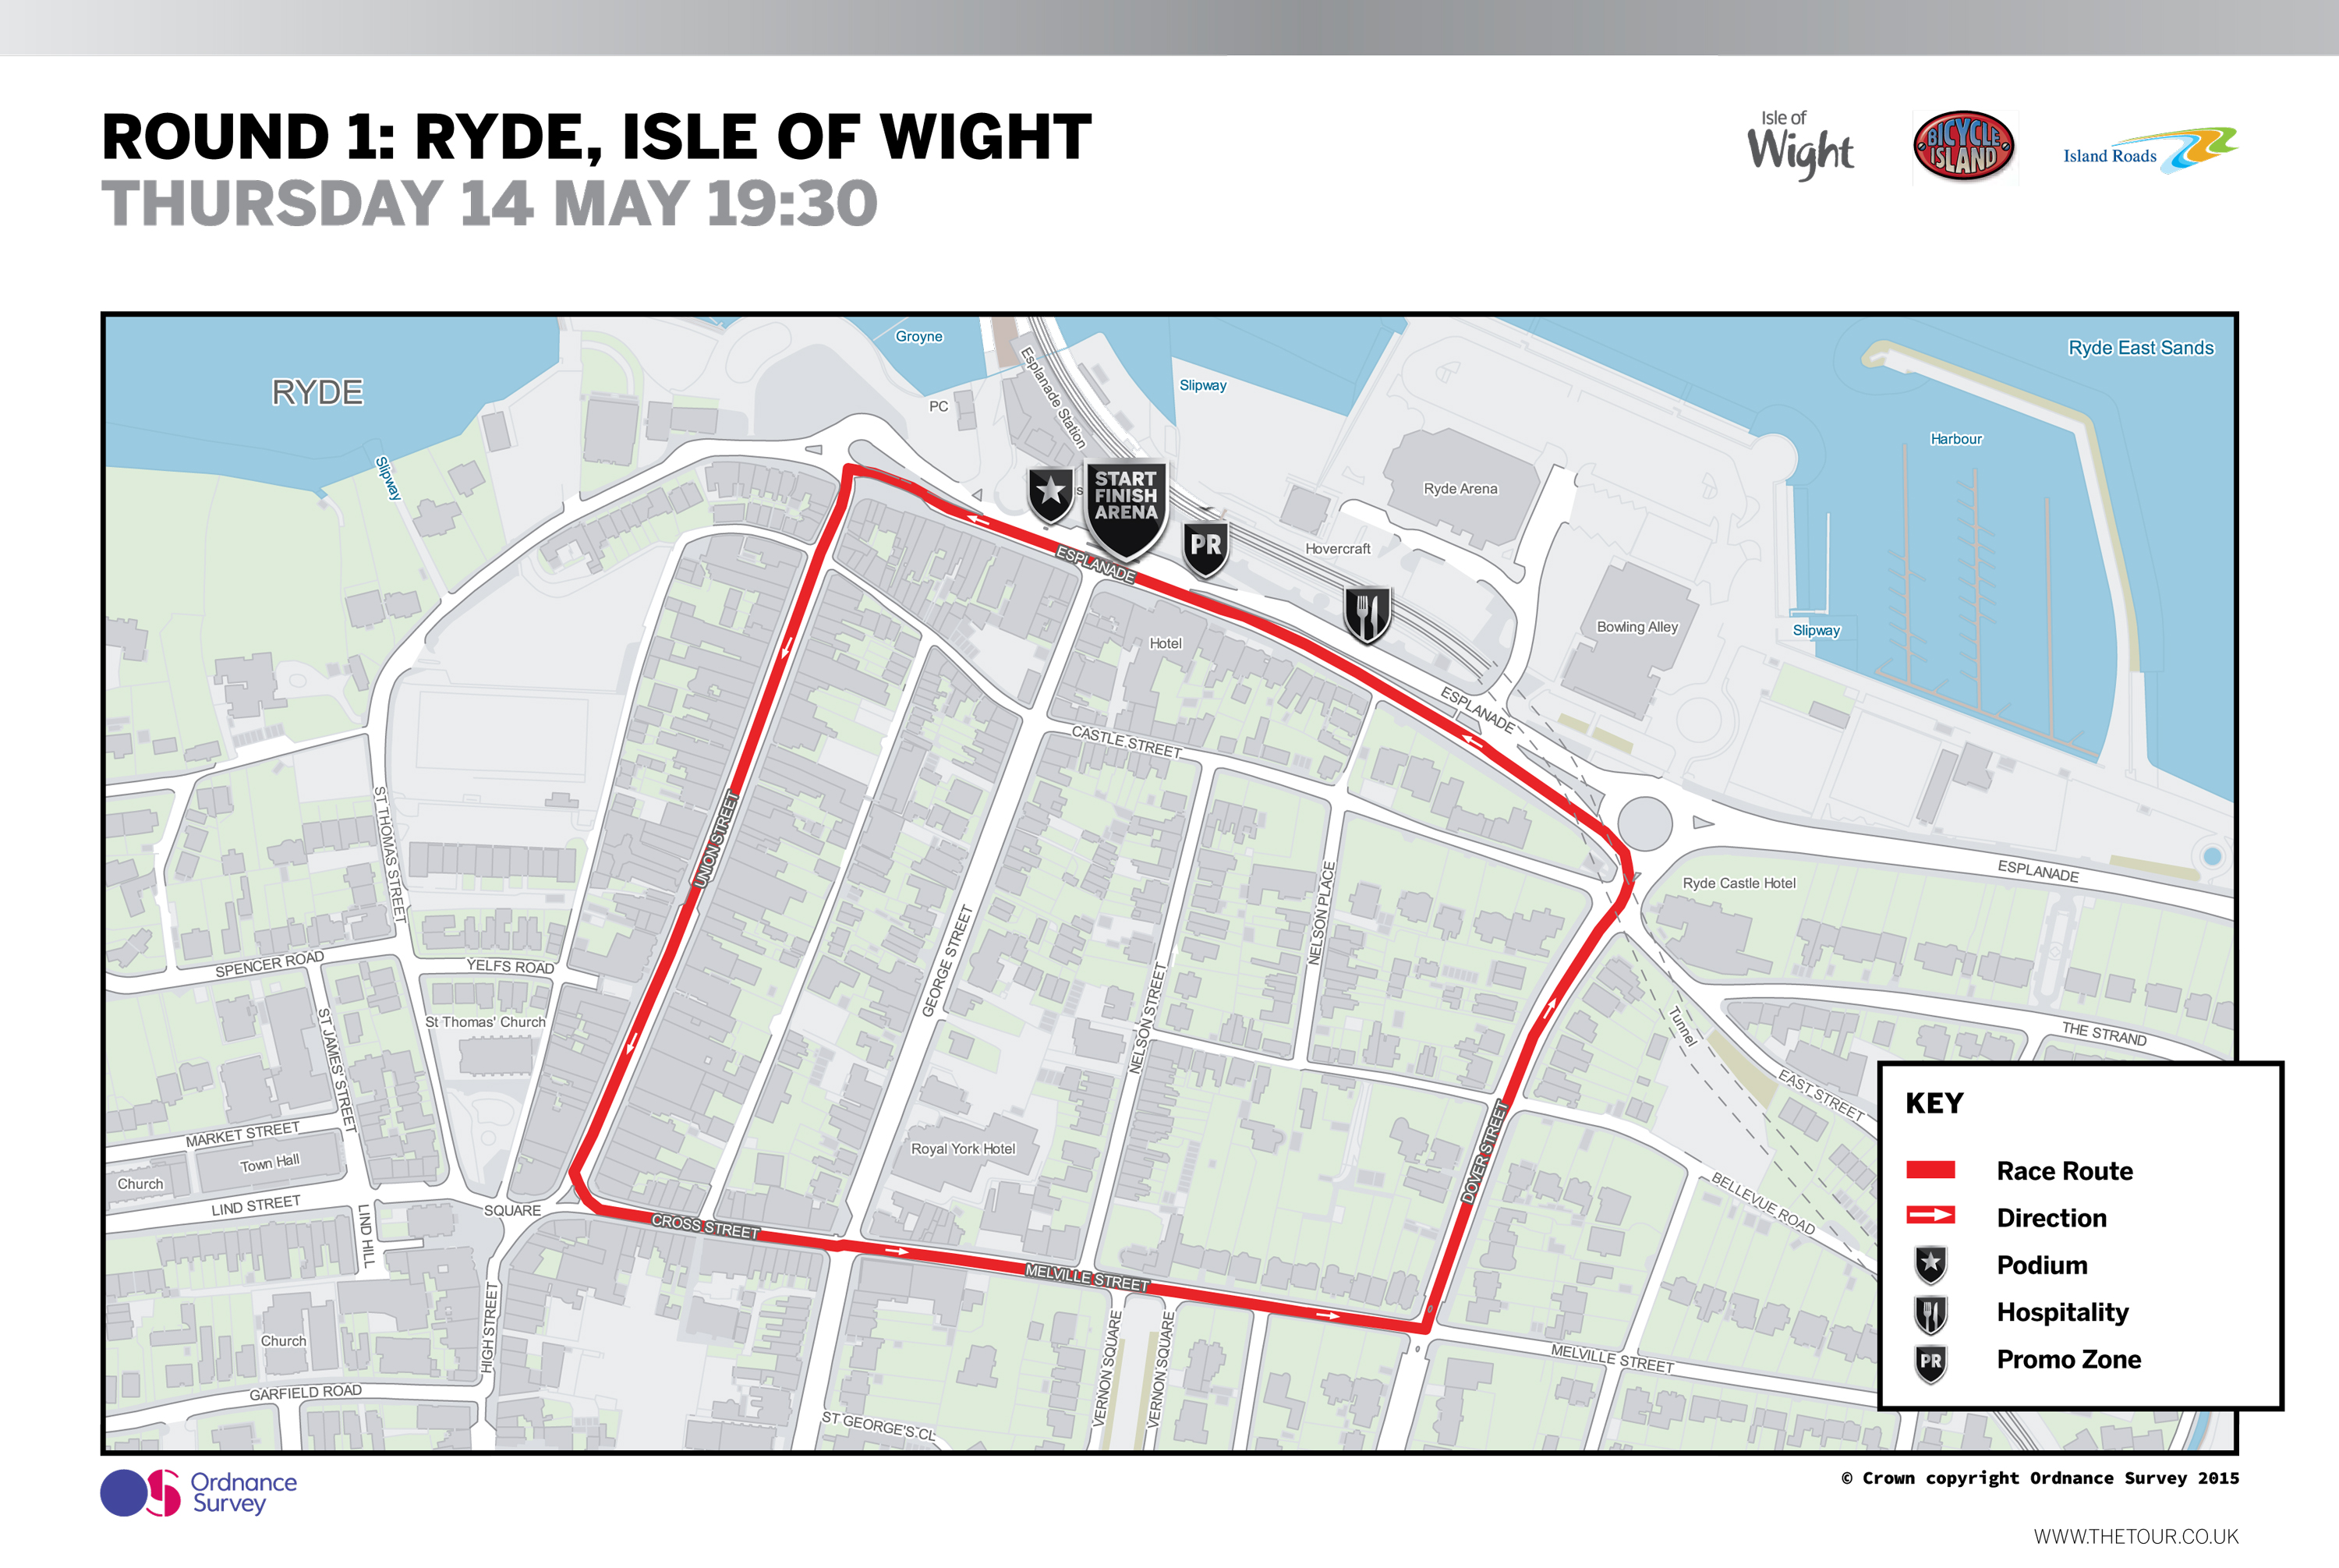 2015 Pearl Izumi Tour Series Round 1 - Ryde, Isle of Wight Map